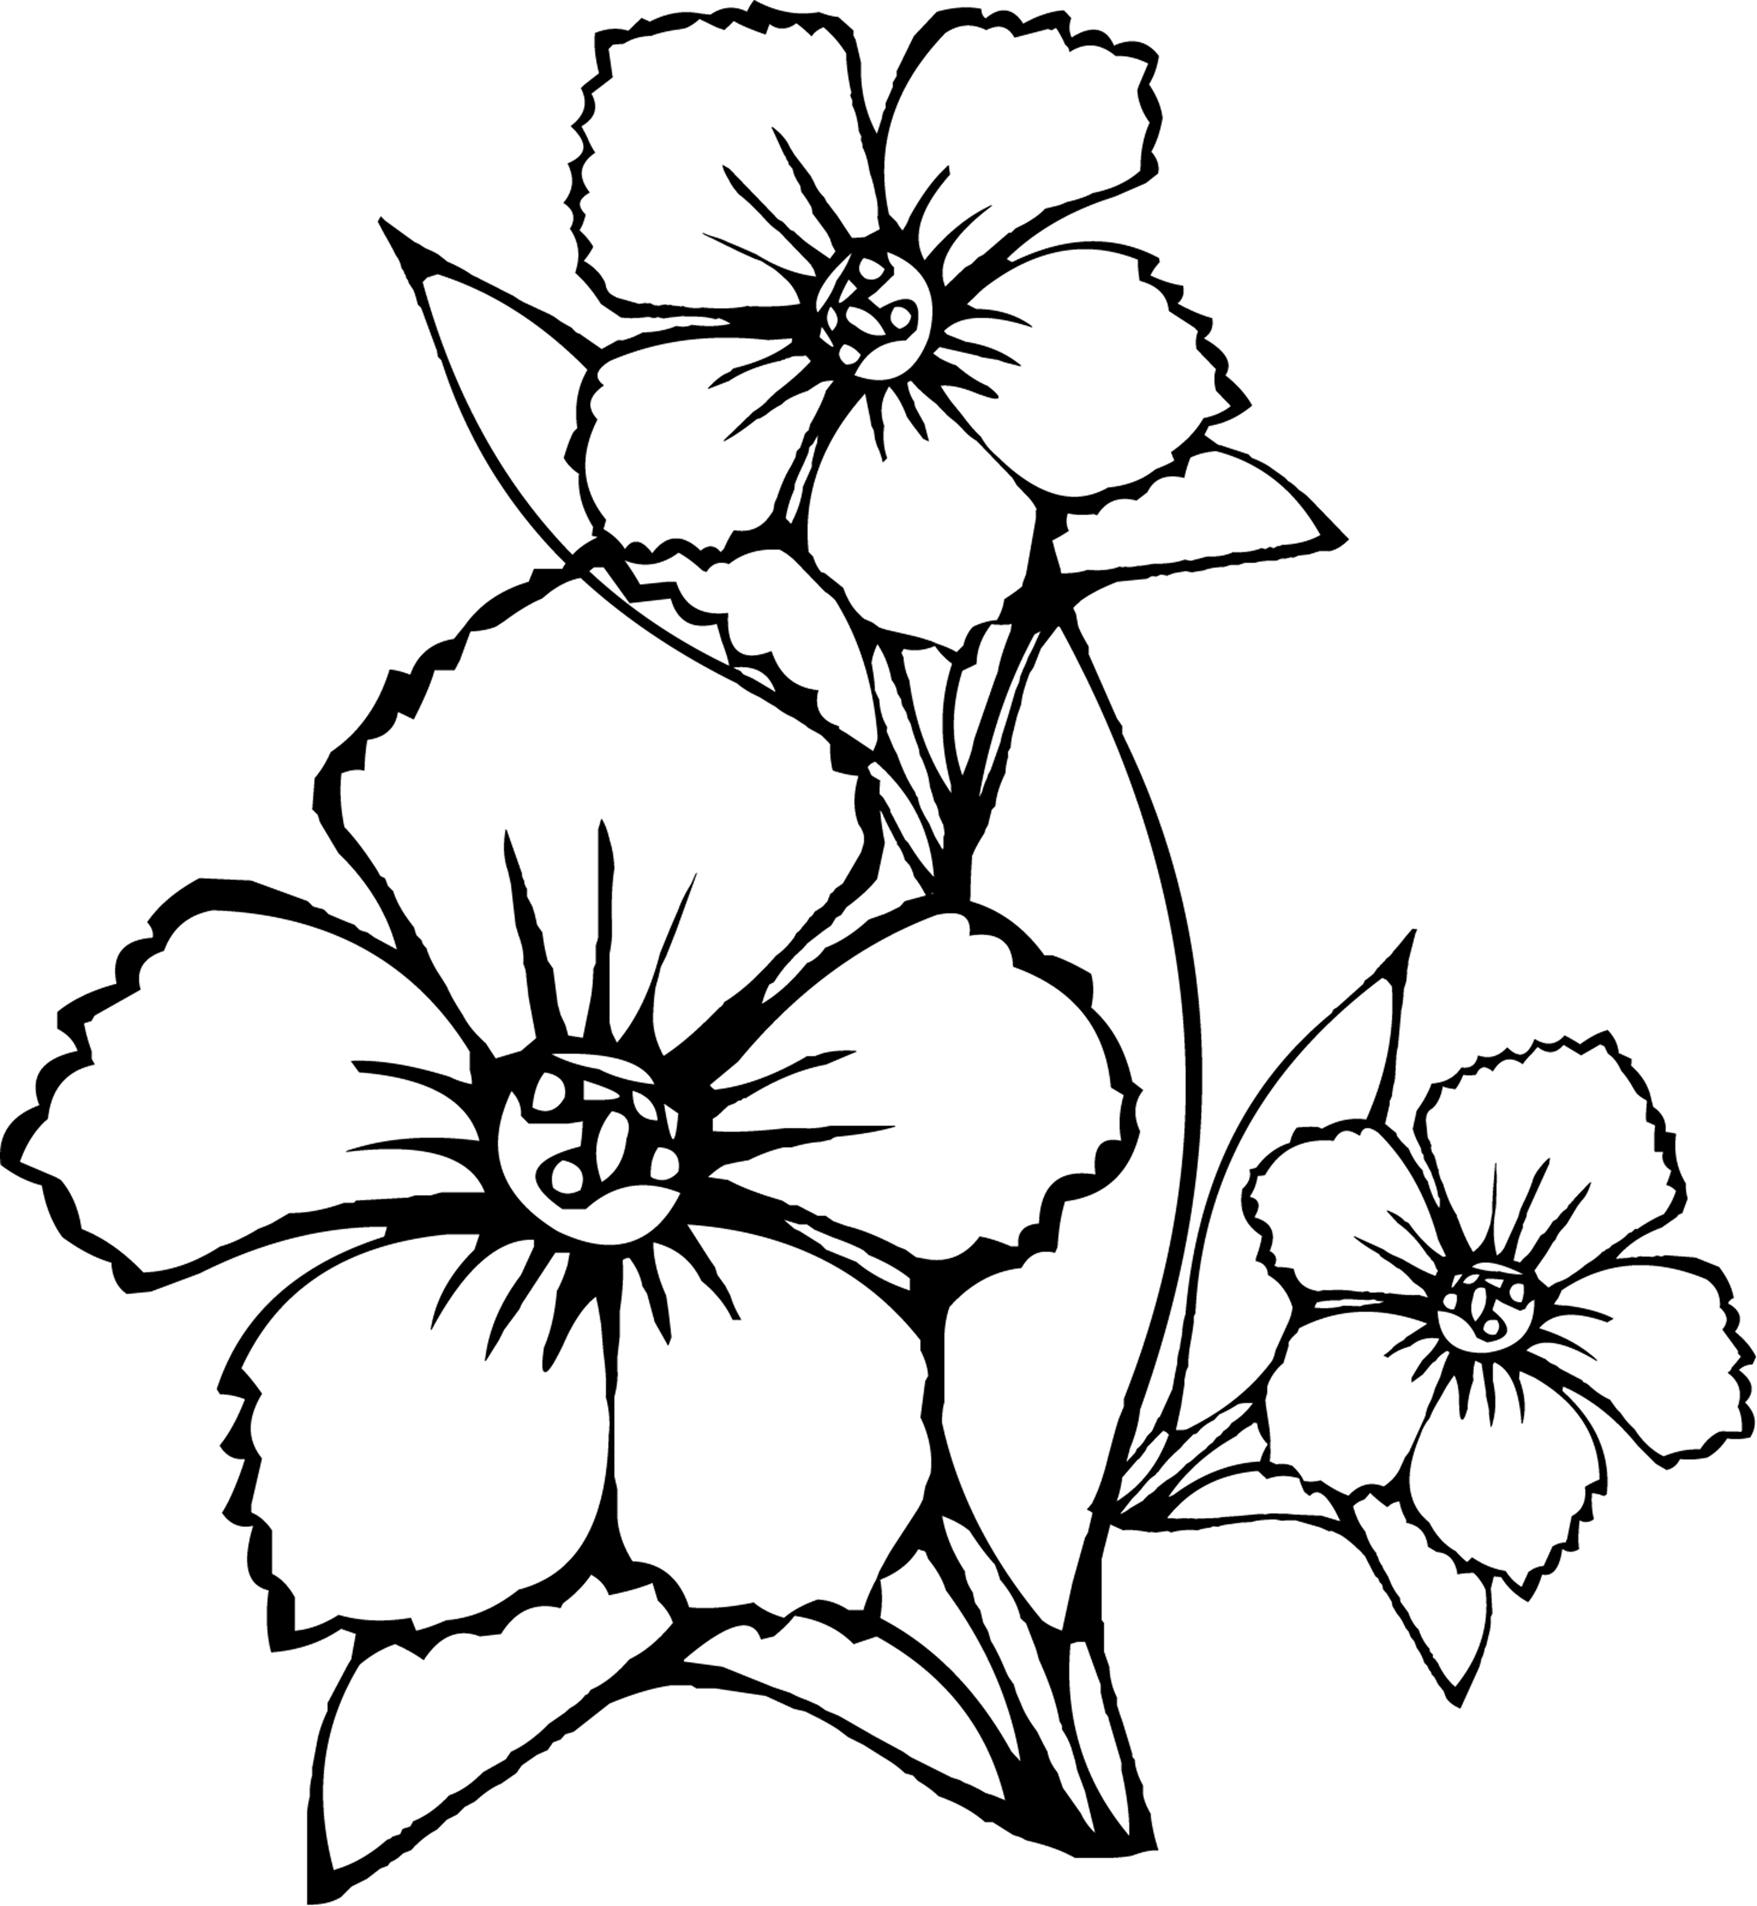 flower coloring pages to print free download to print beautiful spring flower coloring flower pages print coloring to